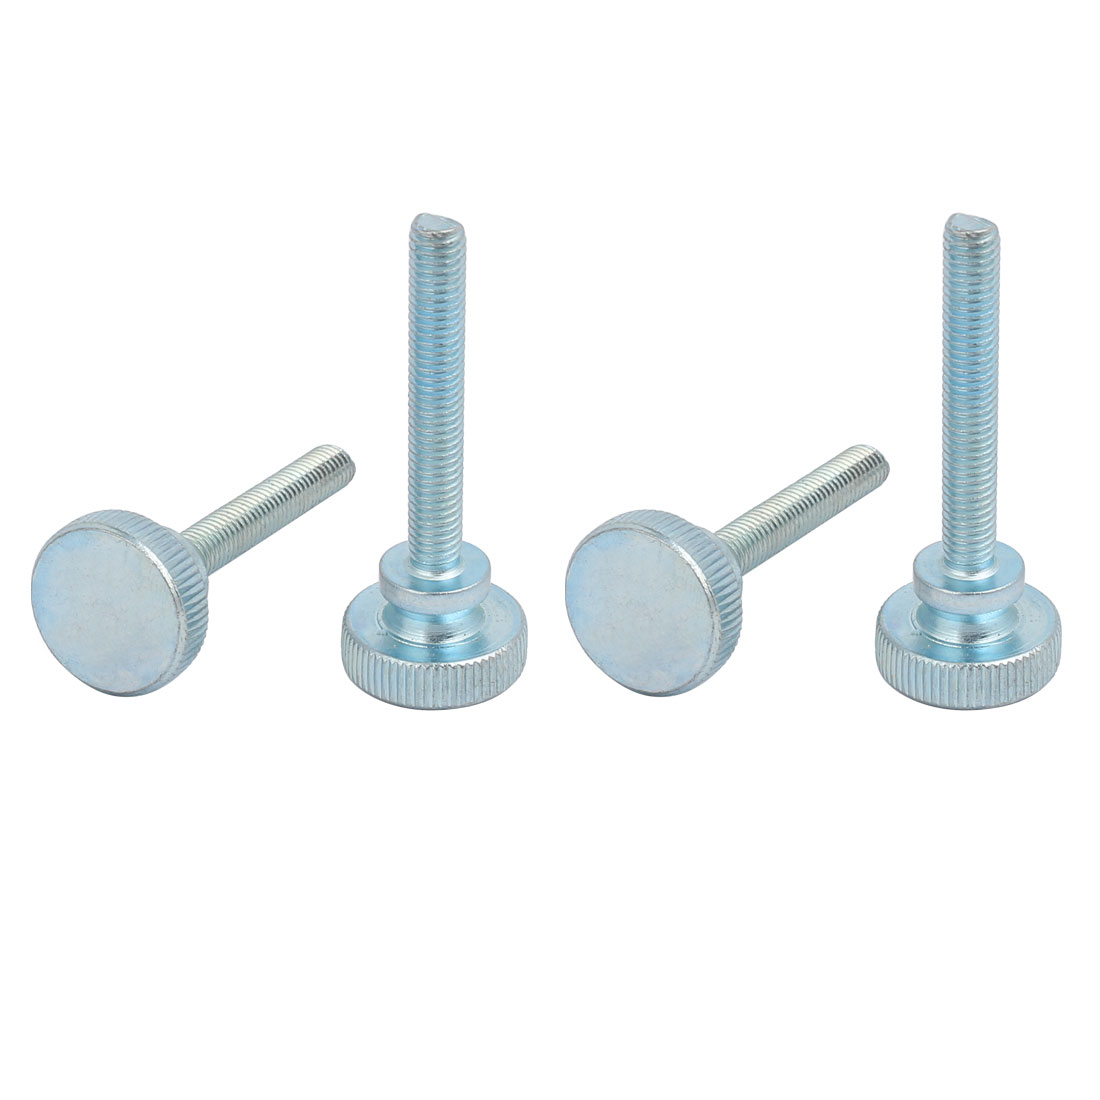 Unique Bargains M6x40mm Carbon Steel Flat Knurled Head Fully Threaded Thumb Screw Bolt 4pcs - image 3 of 3